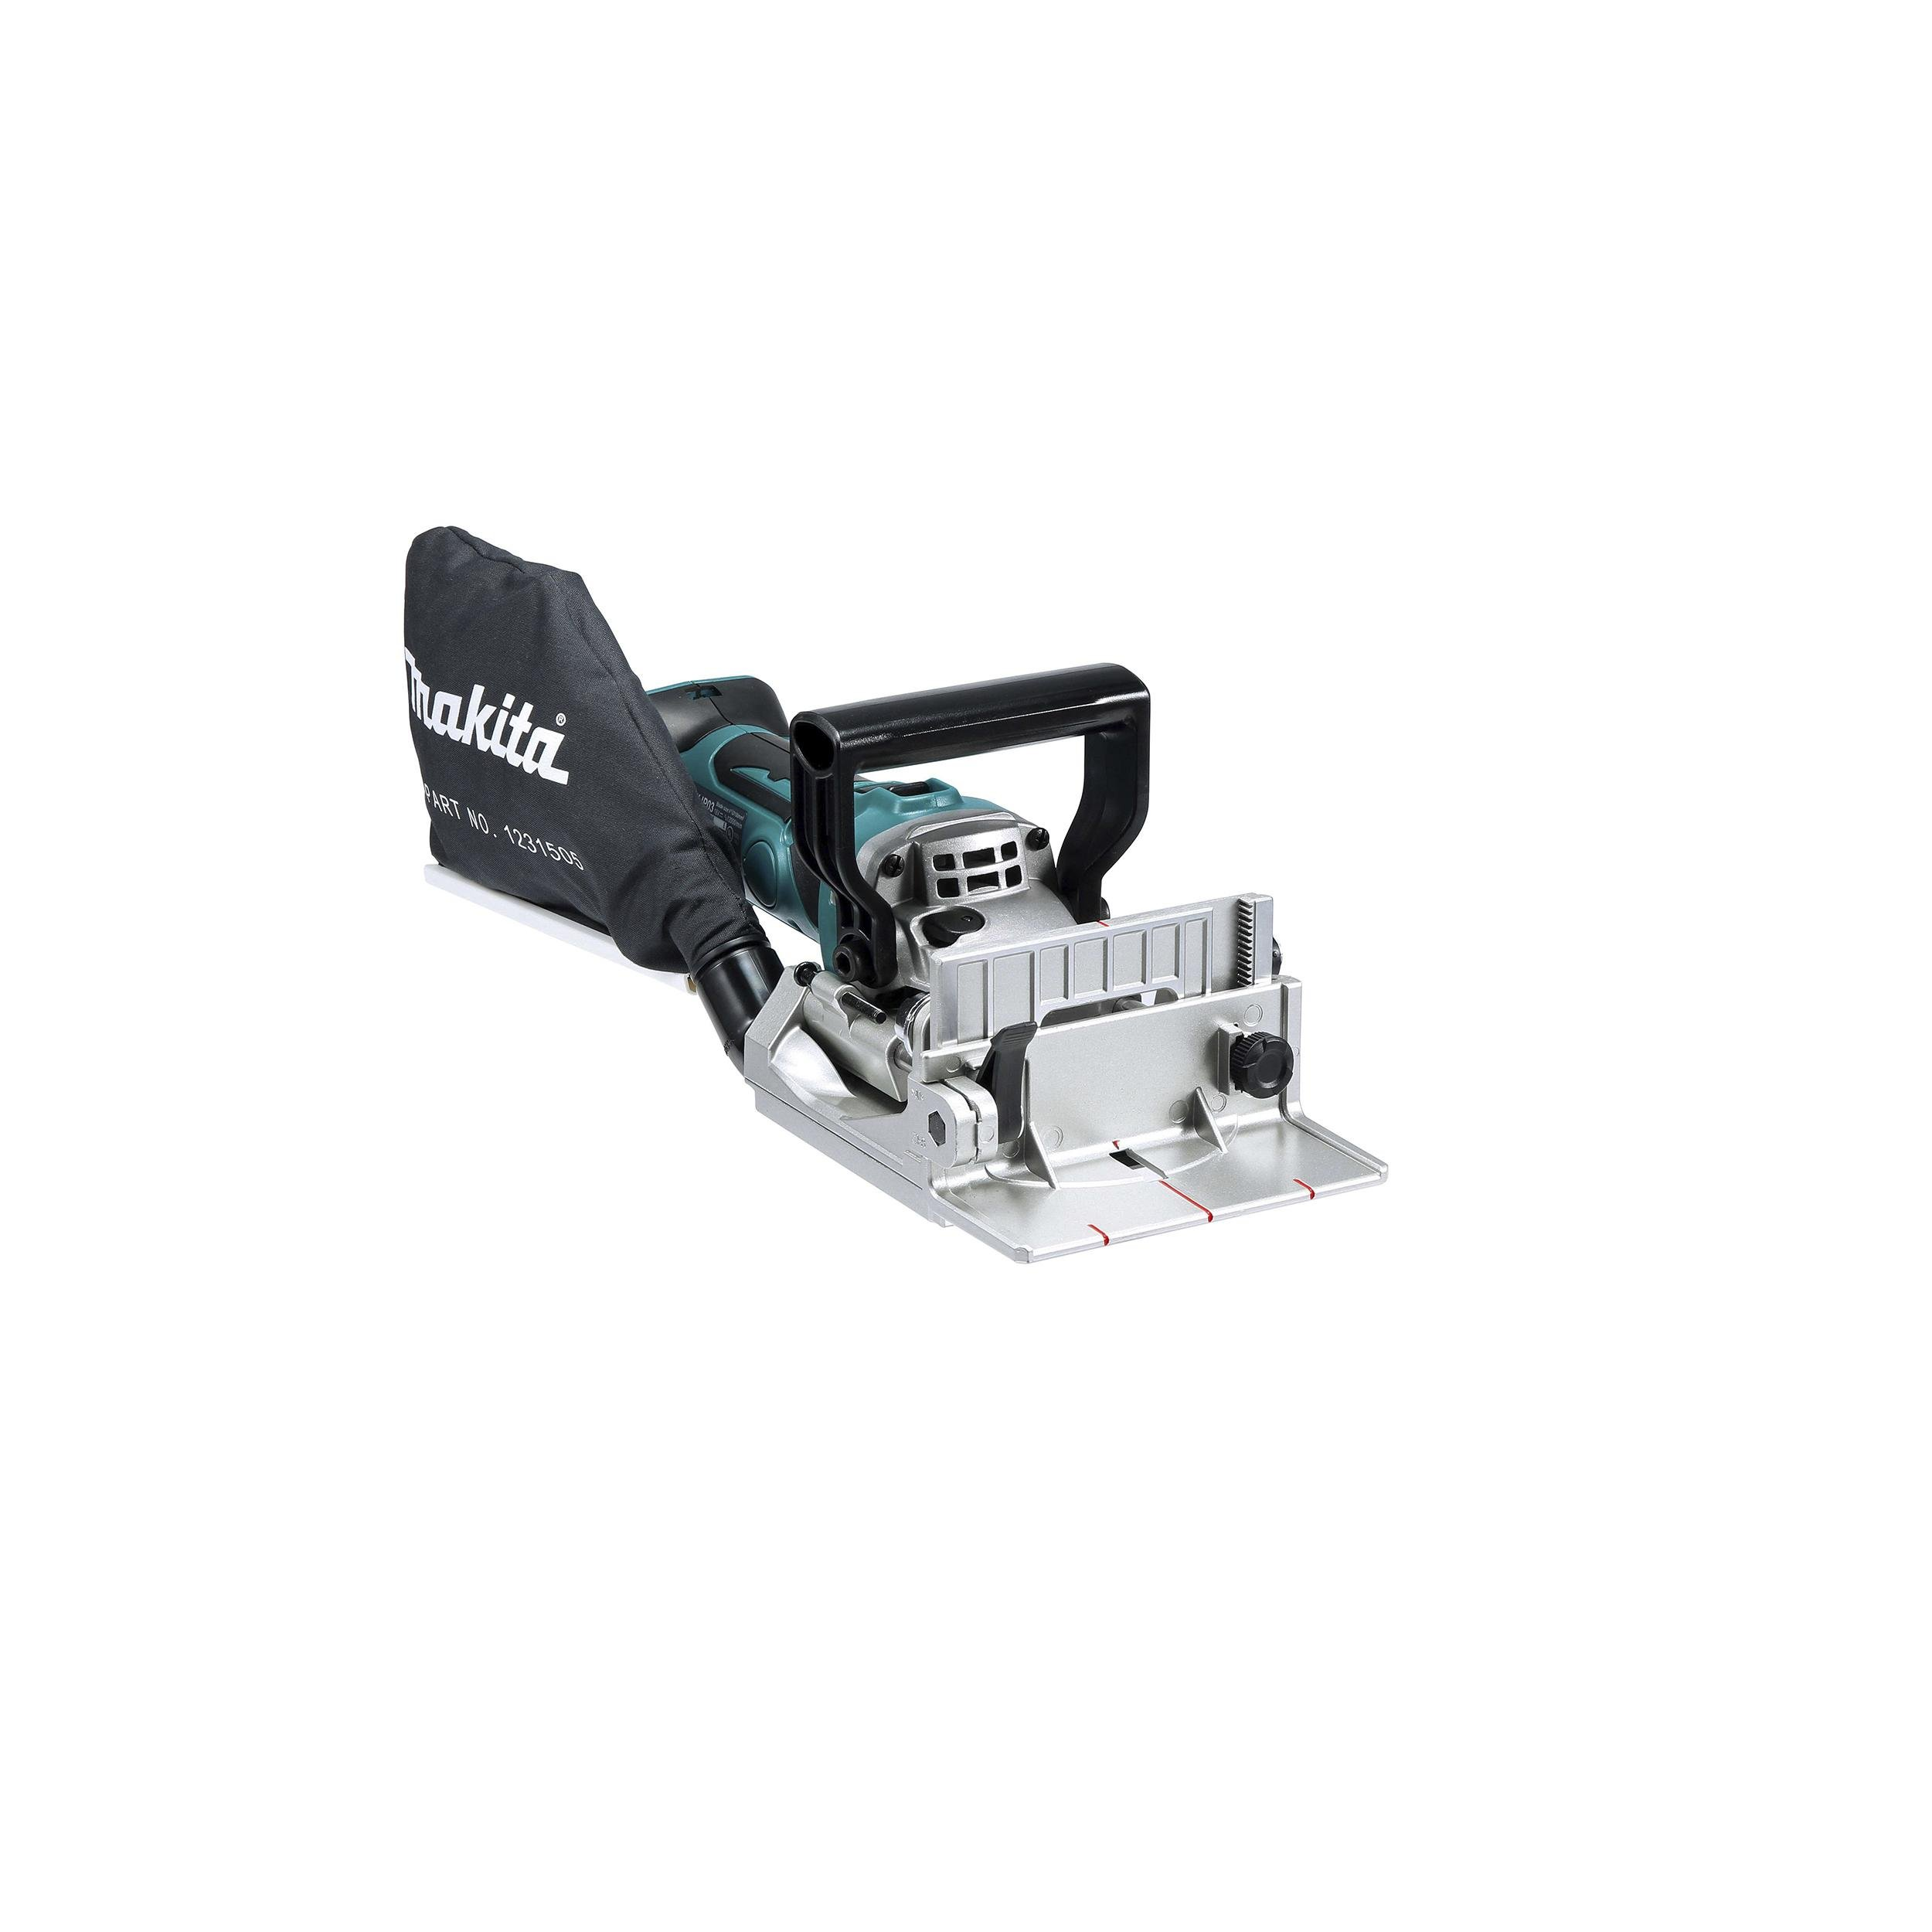 Makita XJP03Z 18V LXT Lithium-Ion Cordless Plate Joiner by Makita (Image #6)